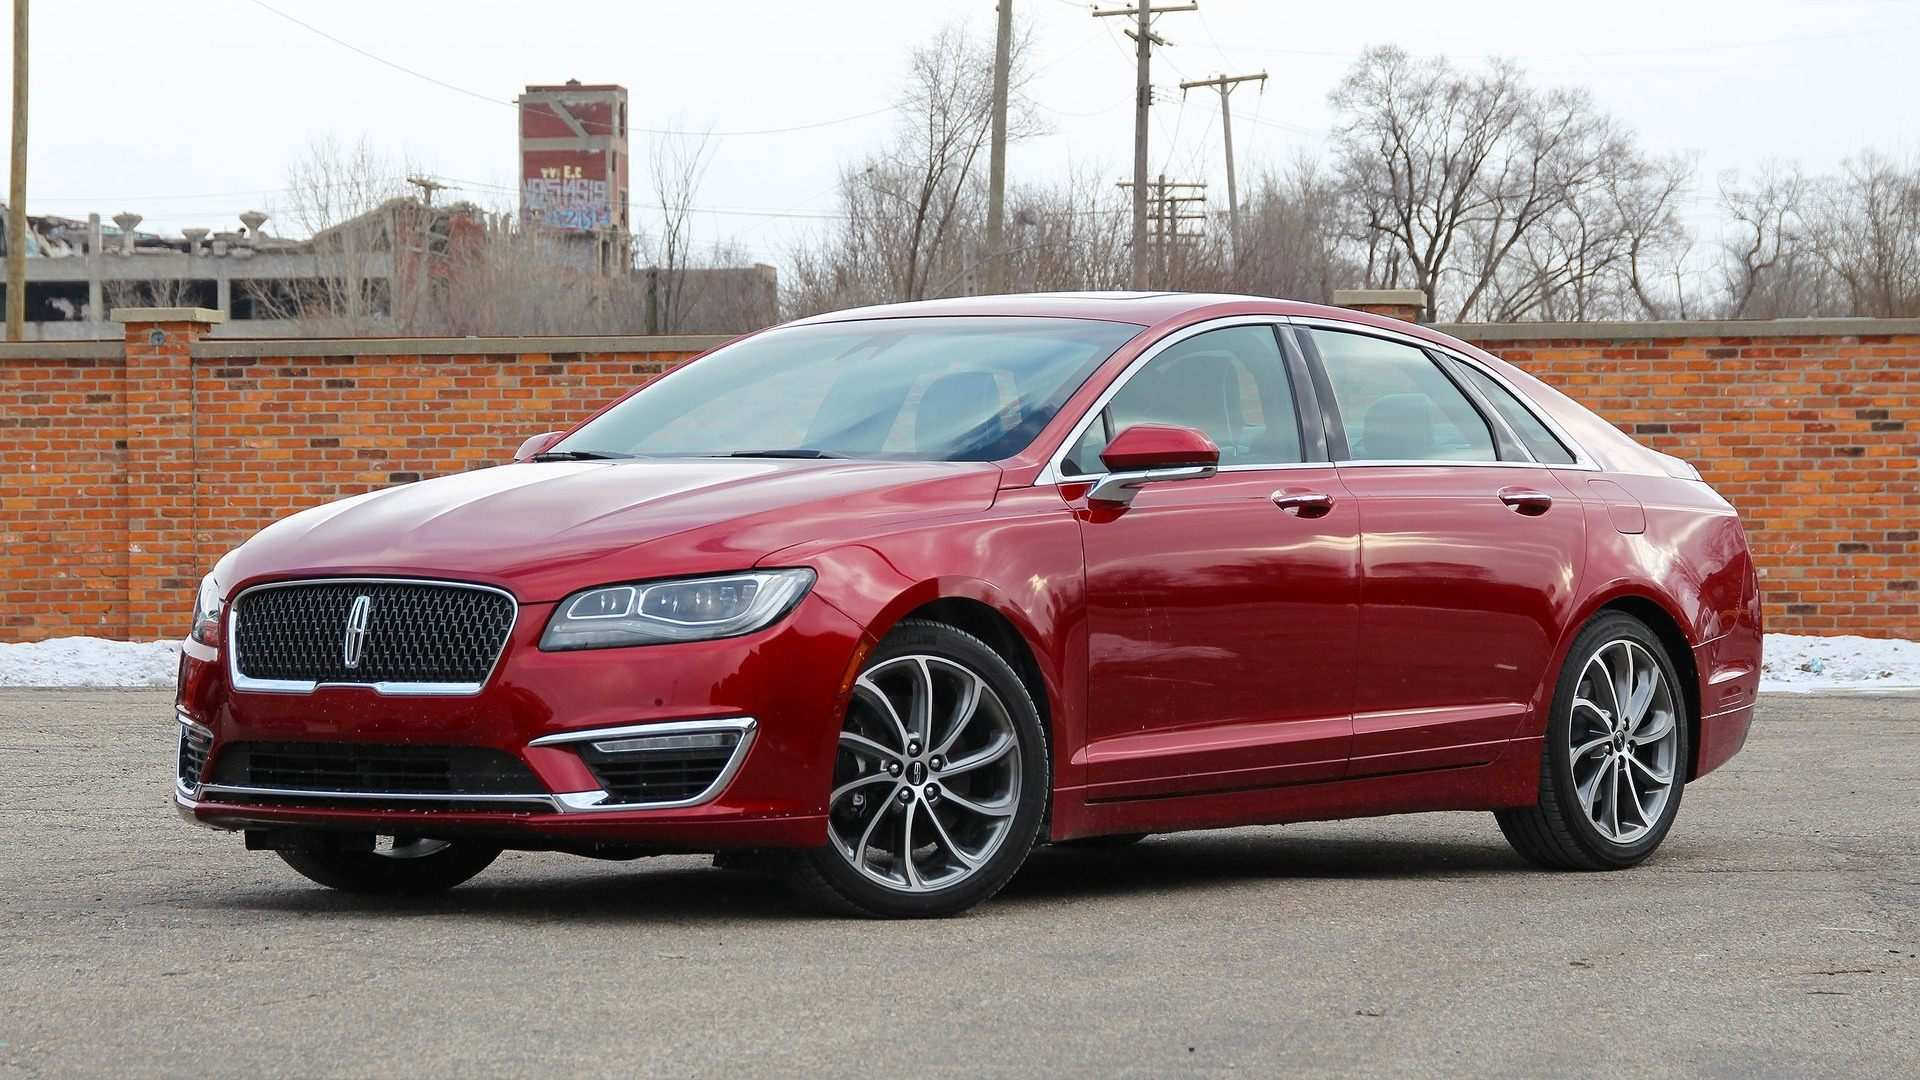 81 New Spy Shots Lincoln Mkz Sedan Performance And New Engine